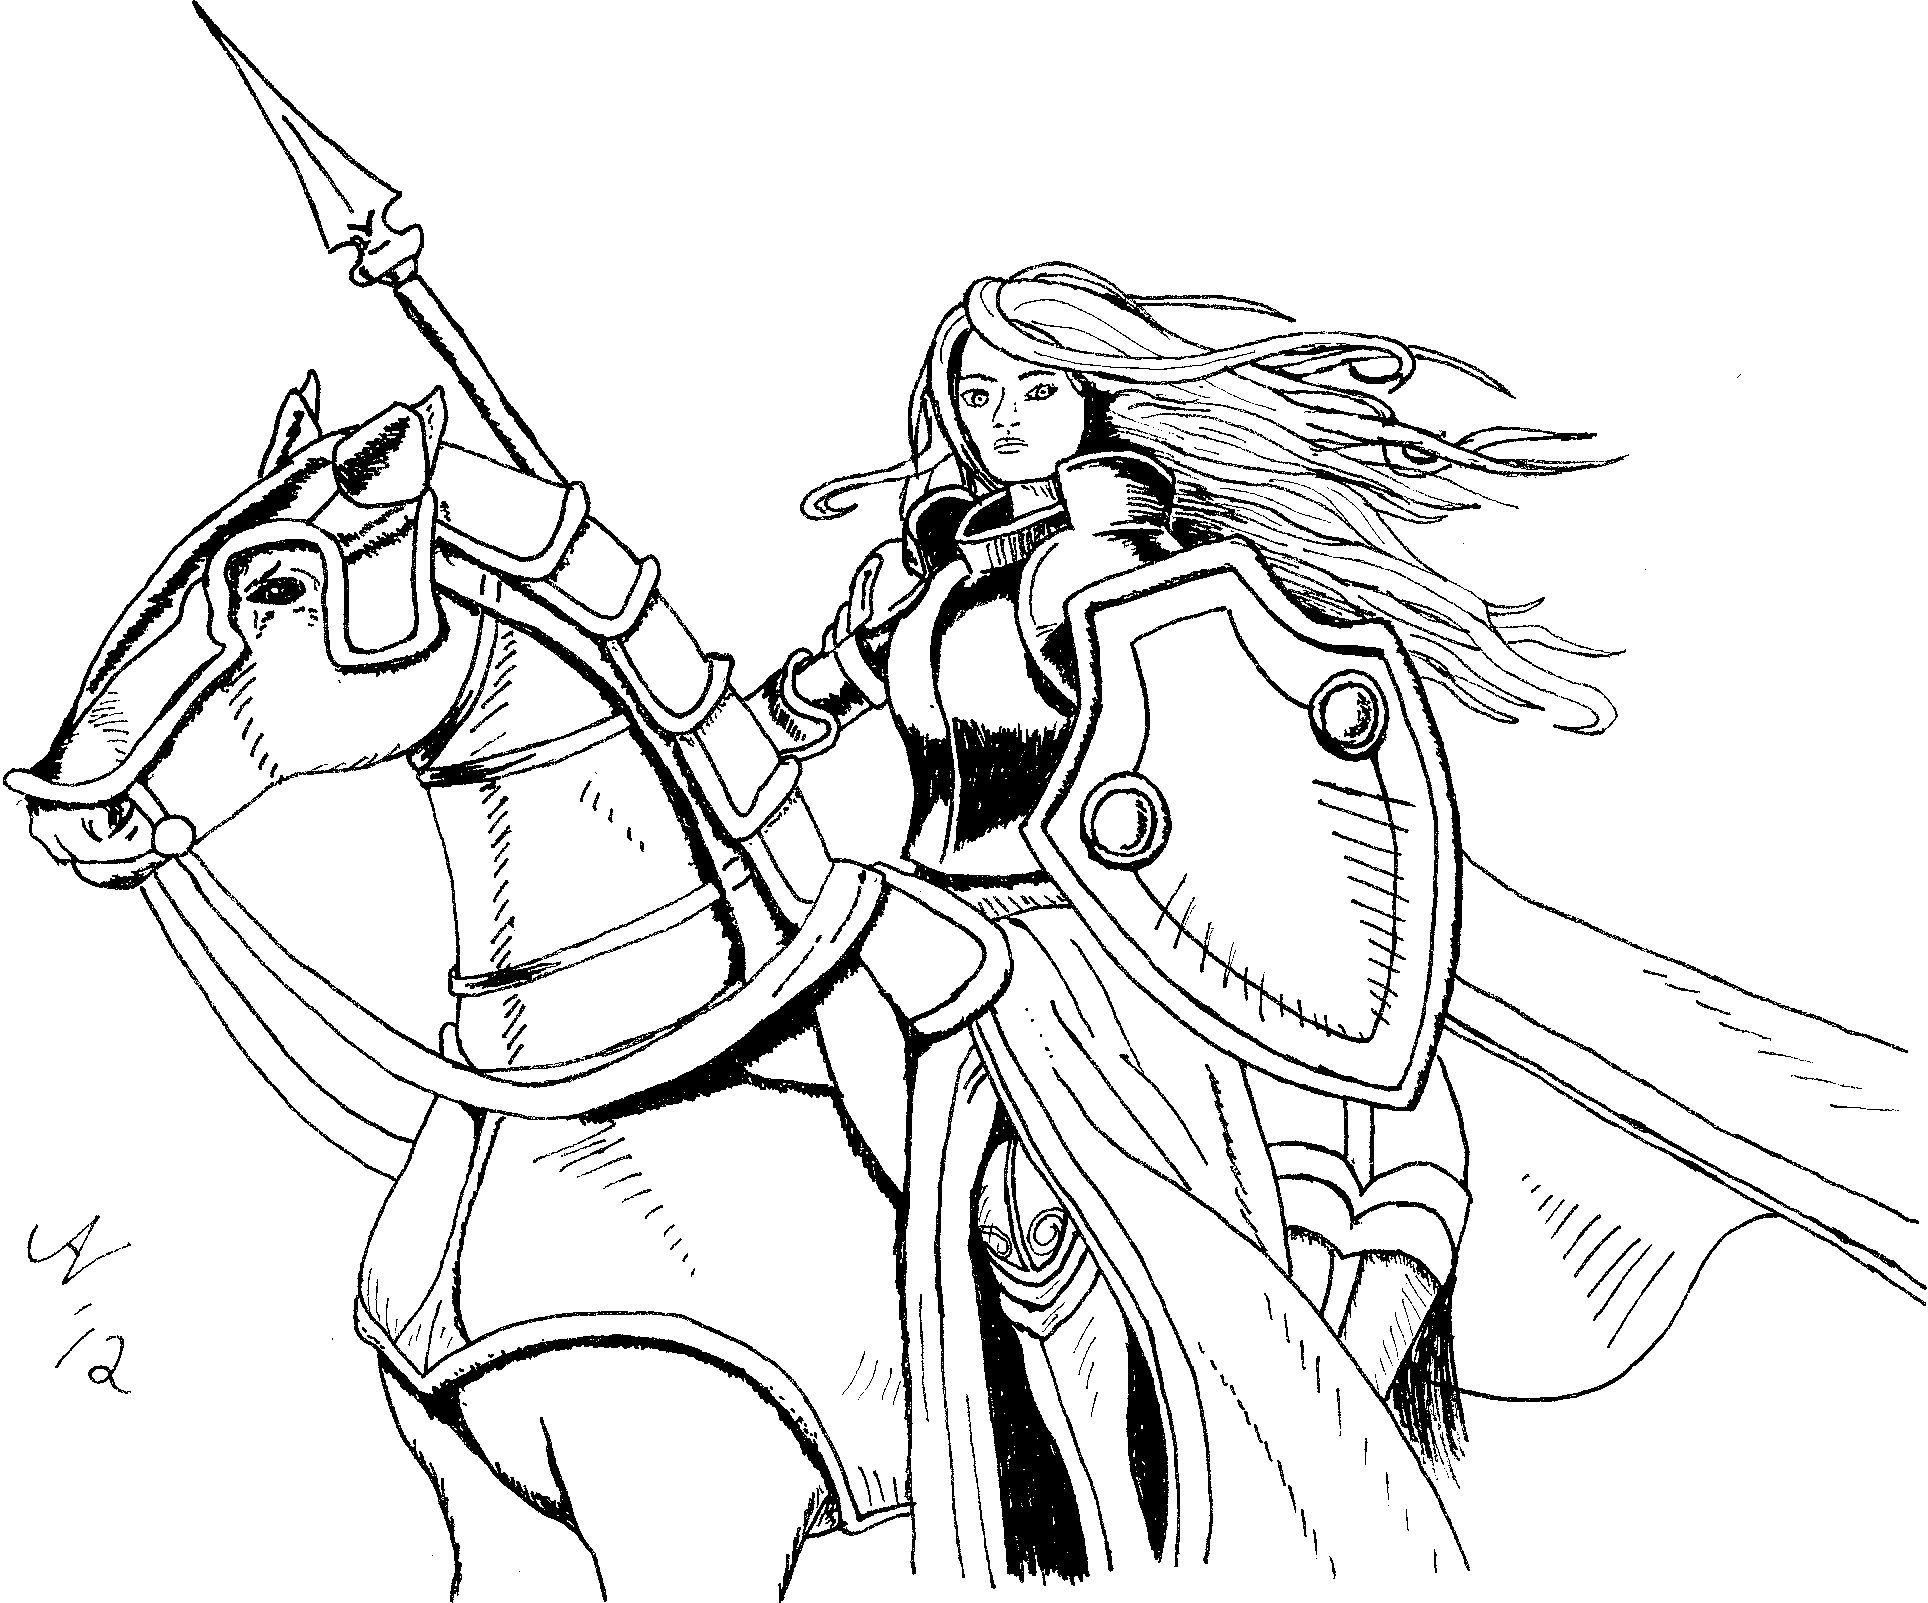 Coloring Book Zoo Coloring Pages Dragon Coloring Page Female Knight